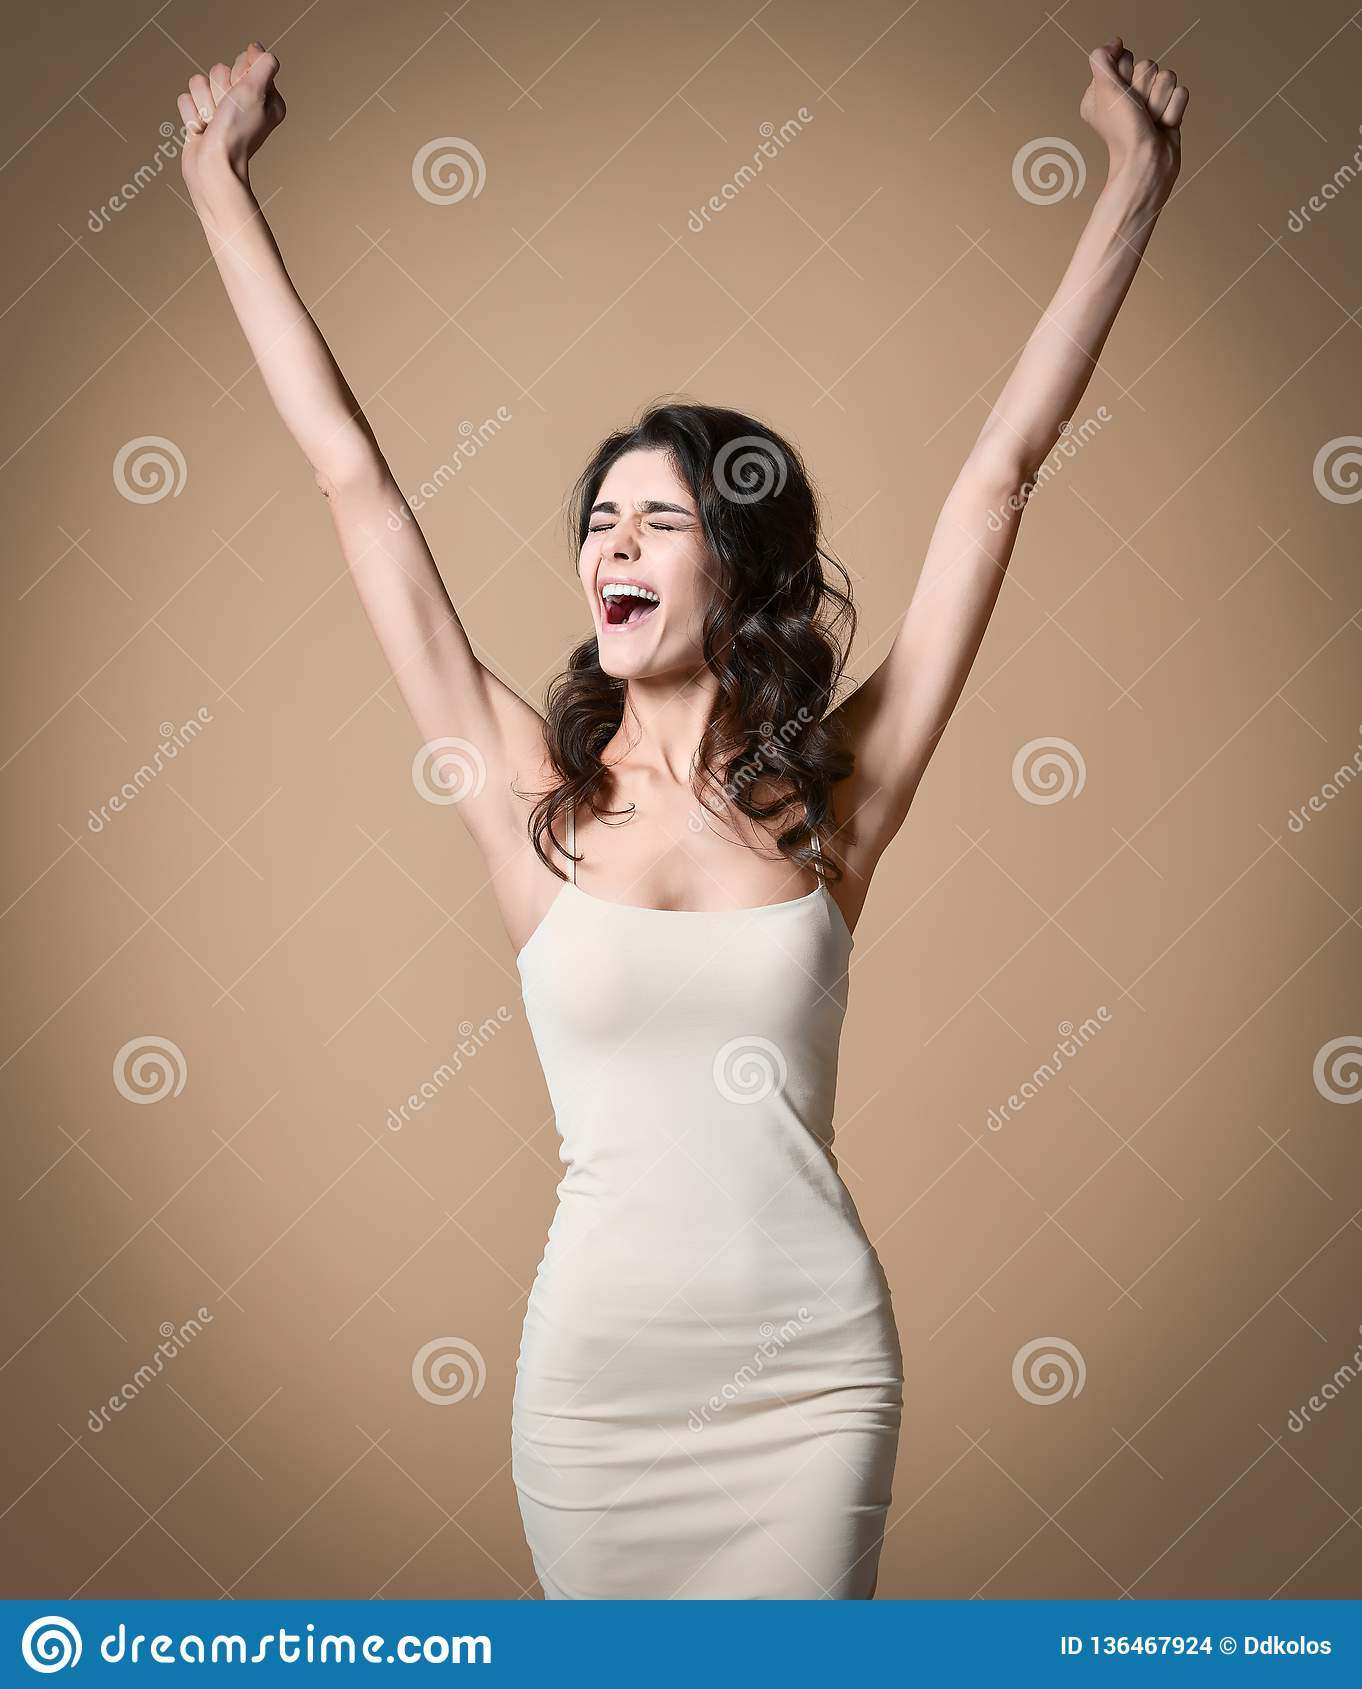 Happy successful young woman with raised hands shouting and celebrating success